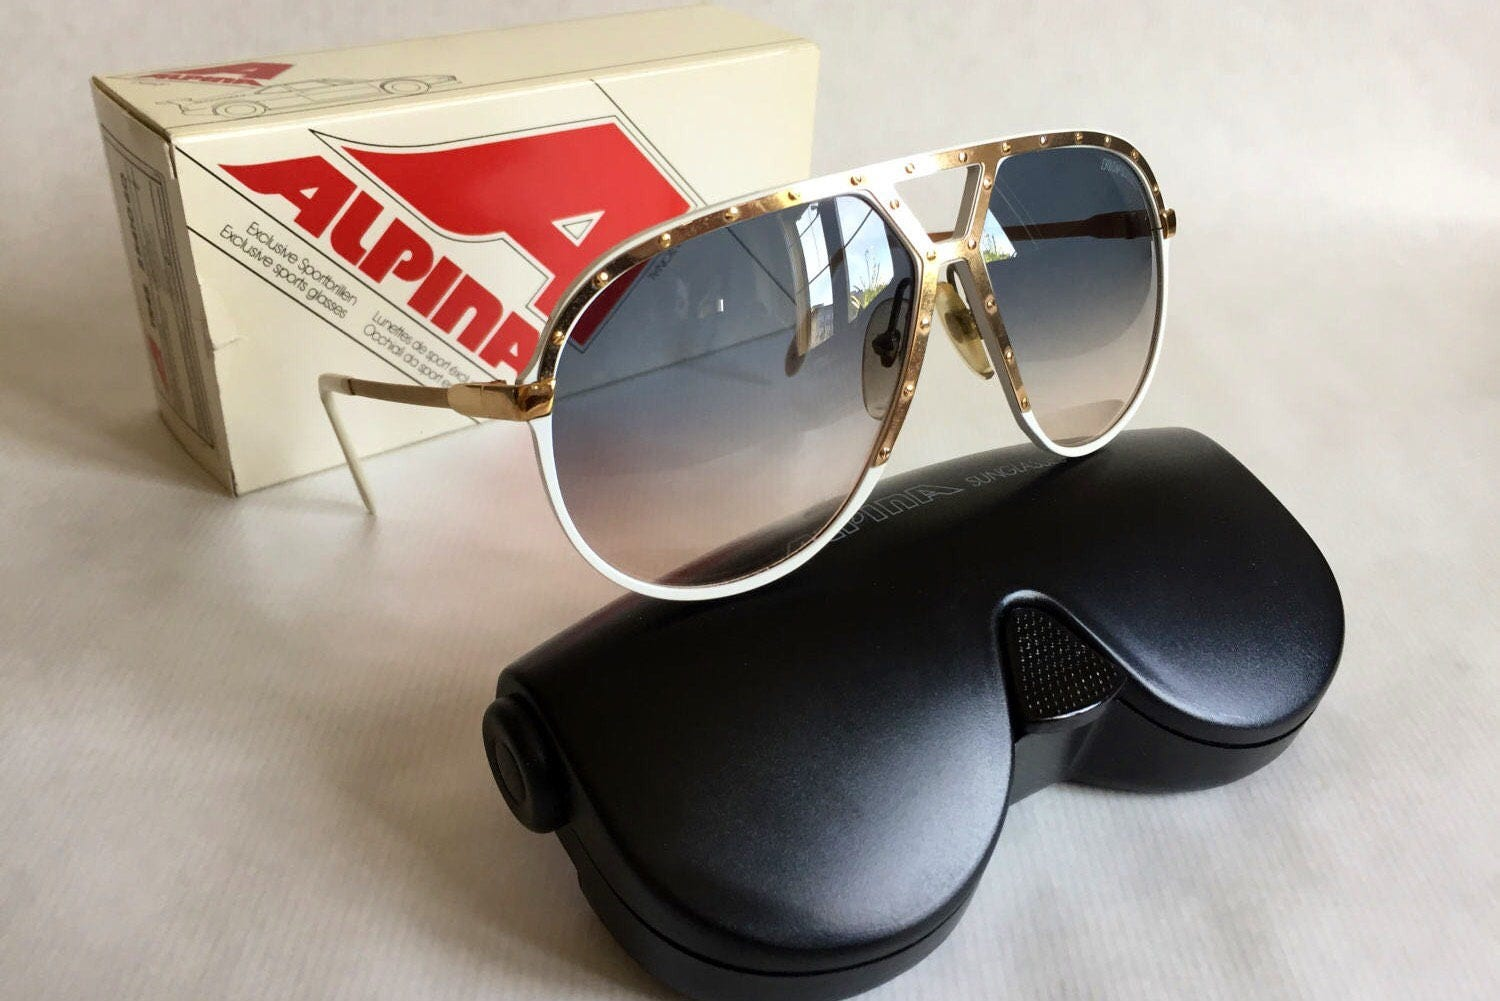 ca1068411b3d Alpina M1 Vintage Sunglasses 24K Gold West Germany New Old Stock including  Case & Box. gallery photo ...